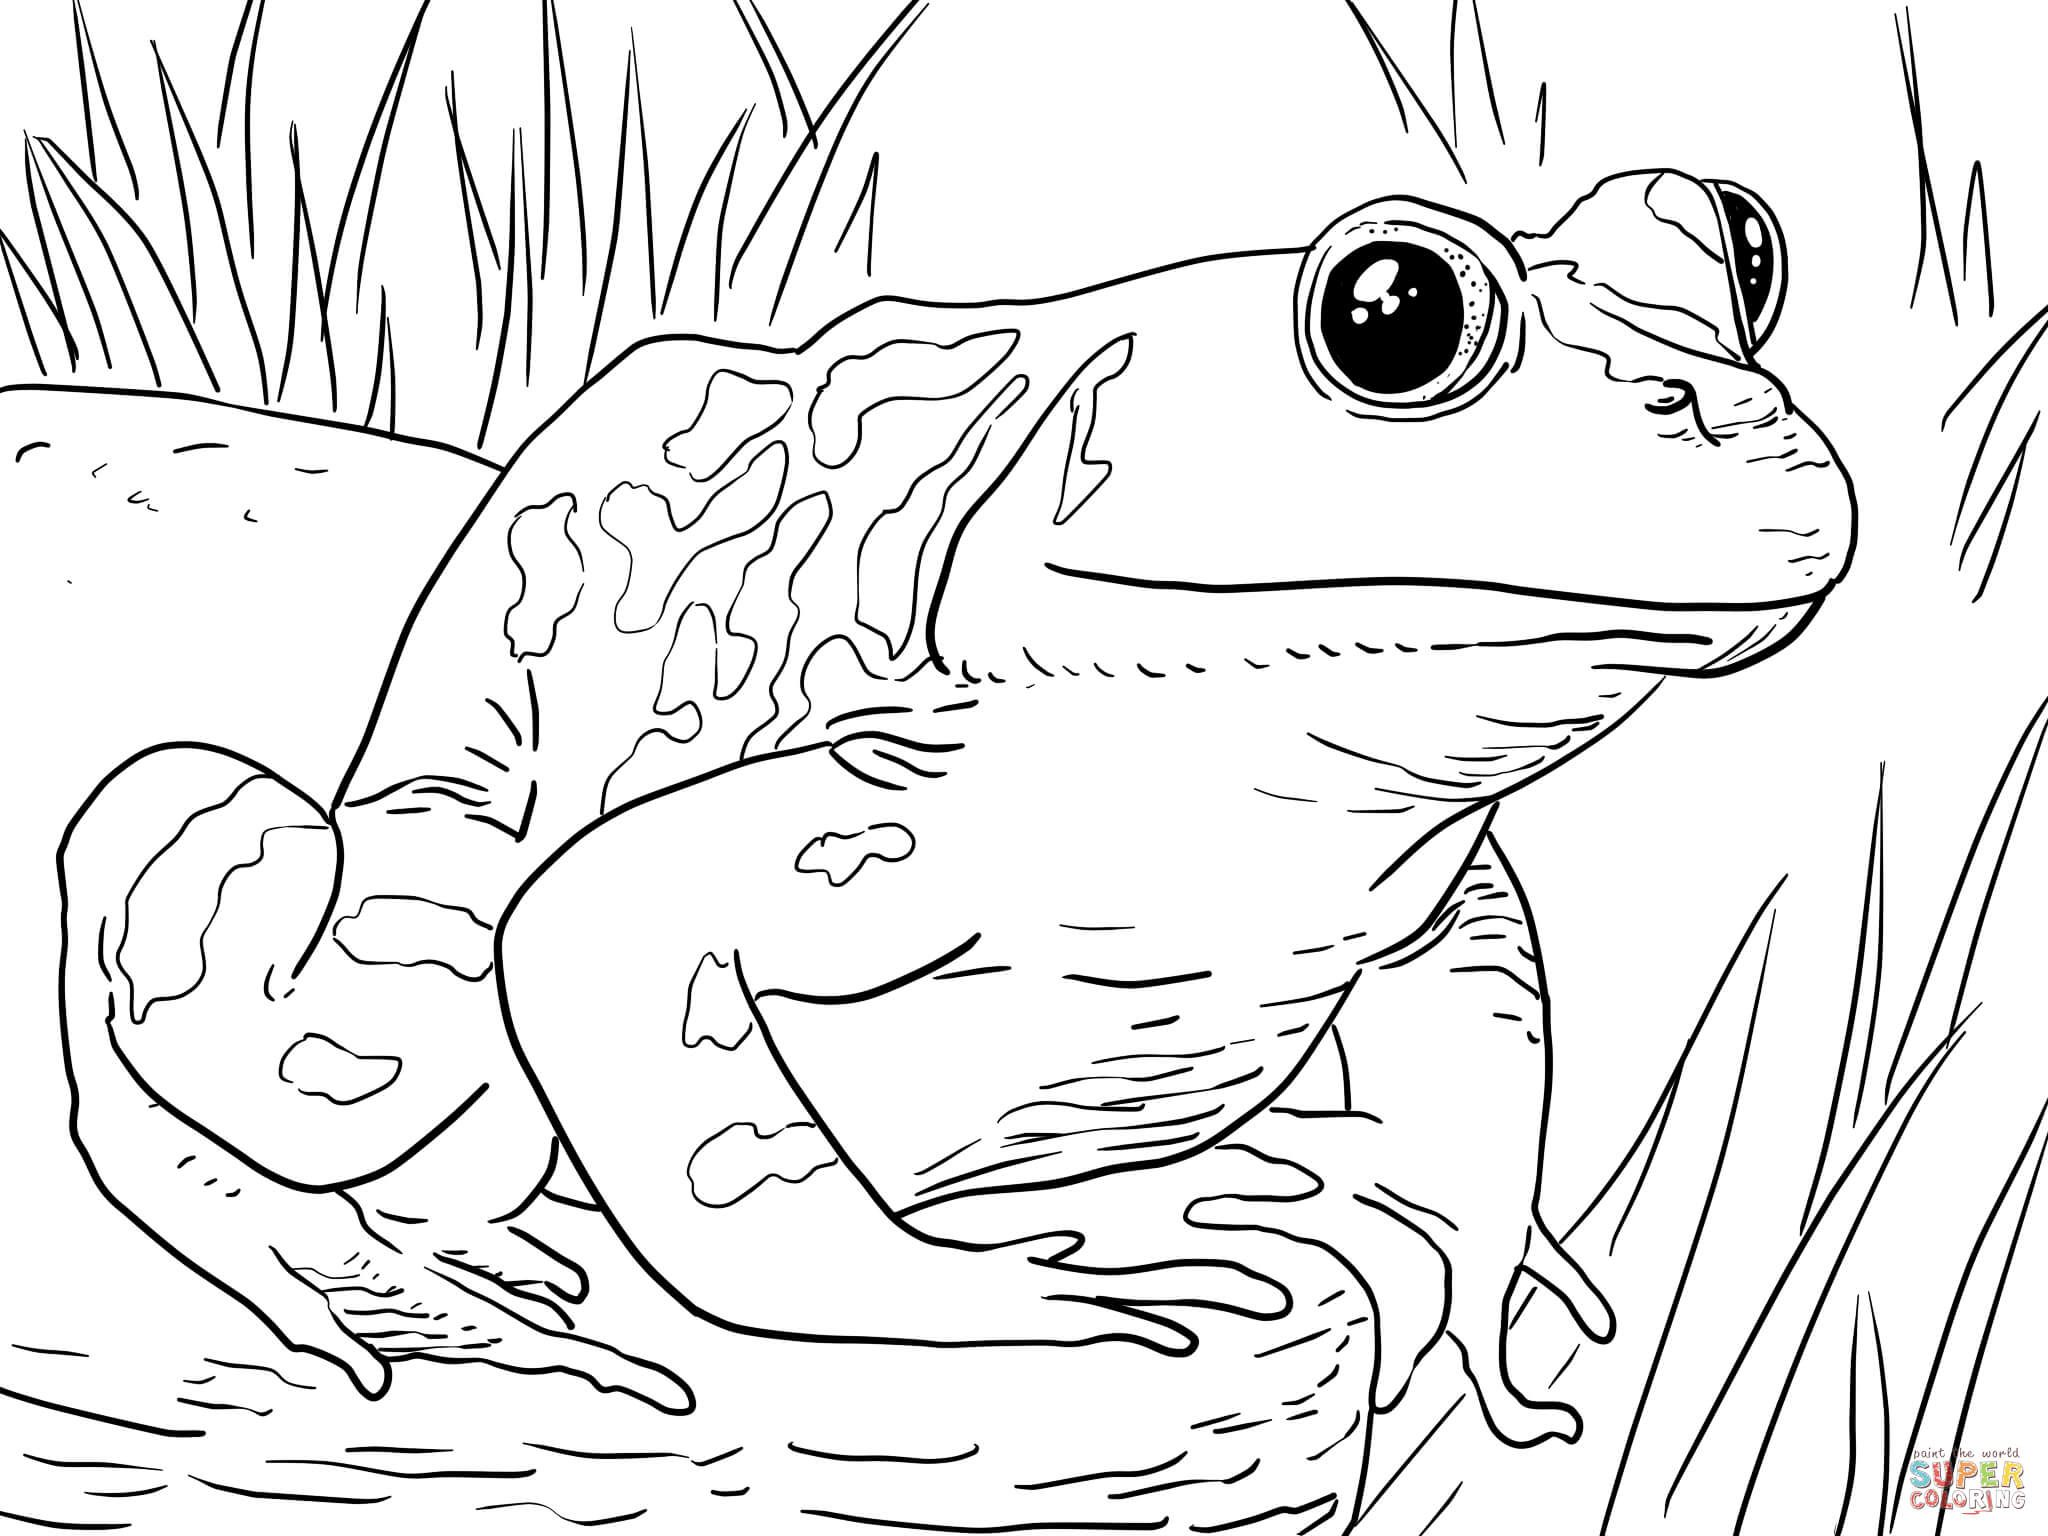 Frogs coloring pages Free Coloring Pages Frog coloring